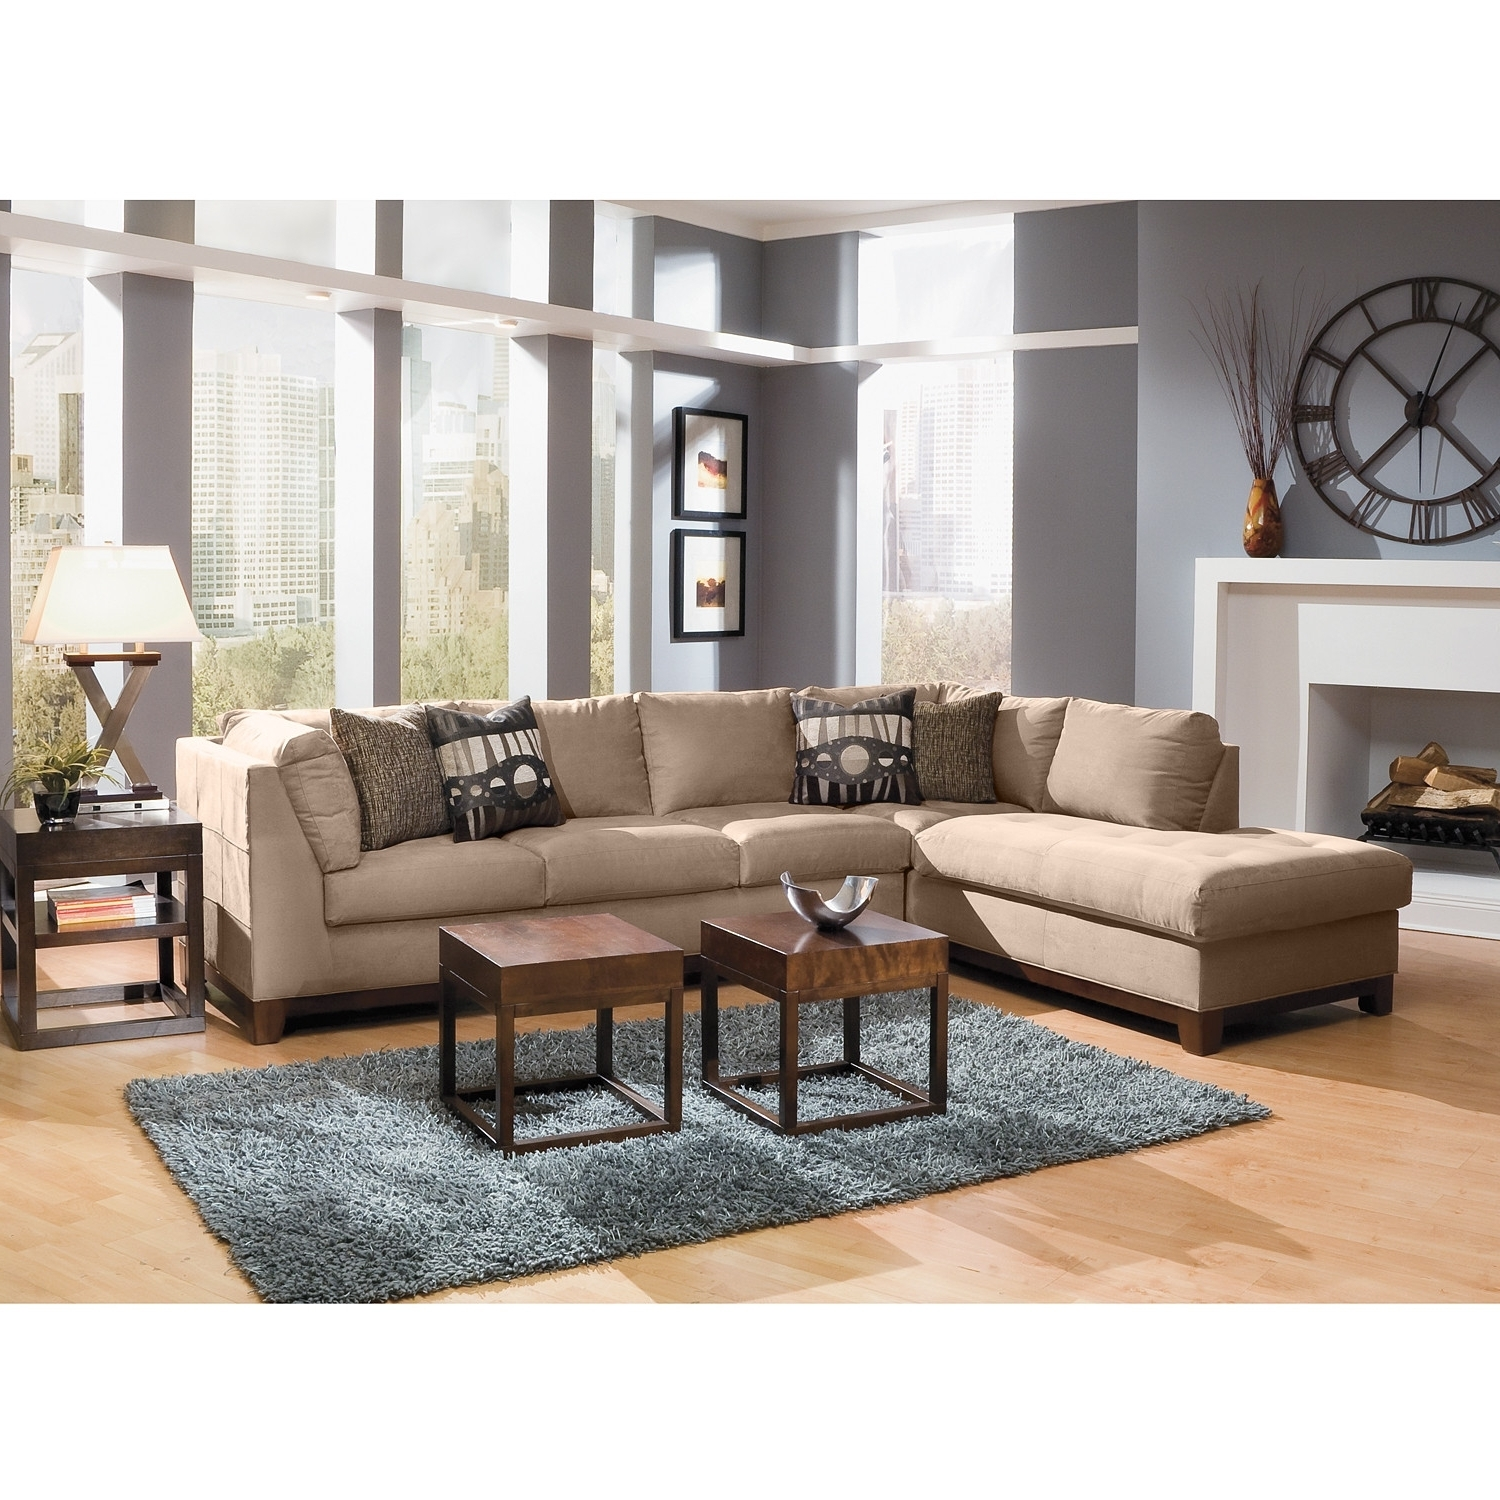 American Furniture Warehouse Greensboro Nc Unique Fresh Sectional For Most Recently Released Greensboro Nc Sectional Sofas (Gallery 9 of 20)